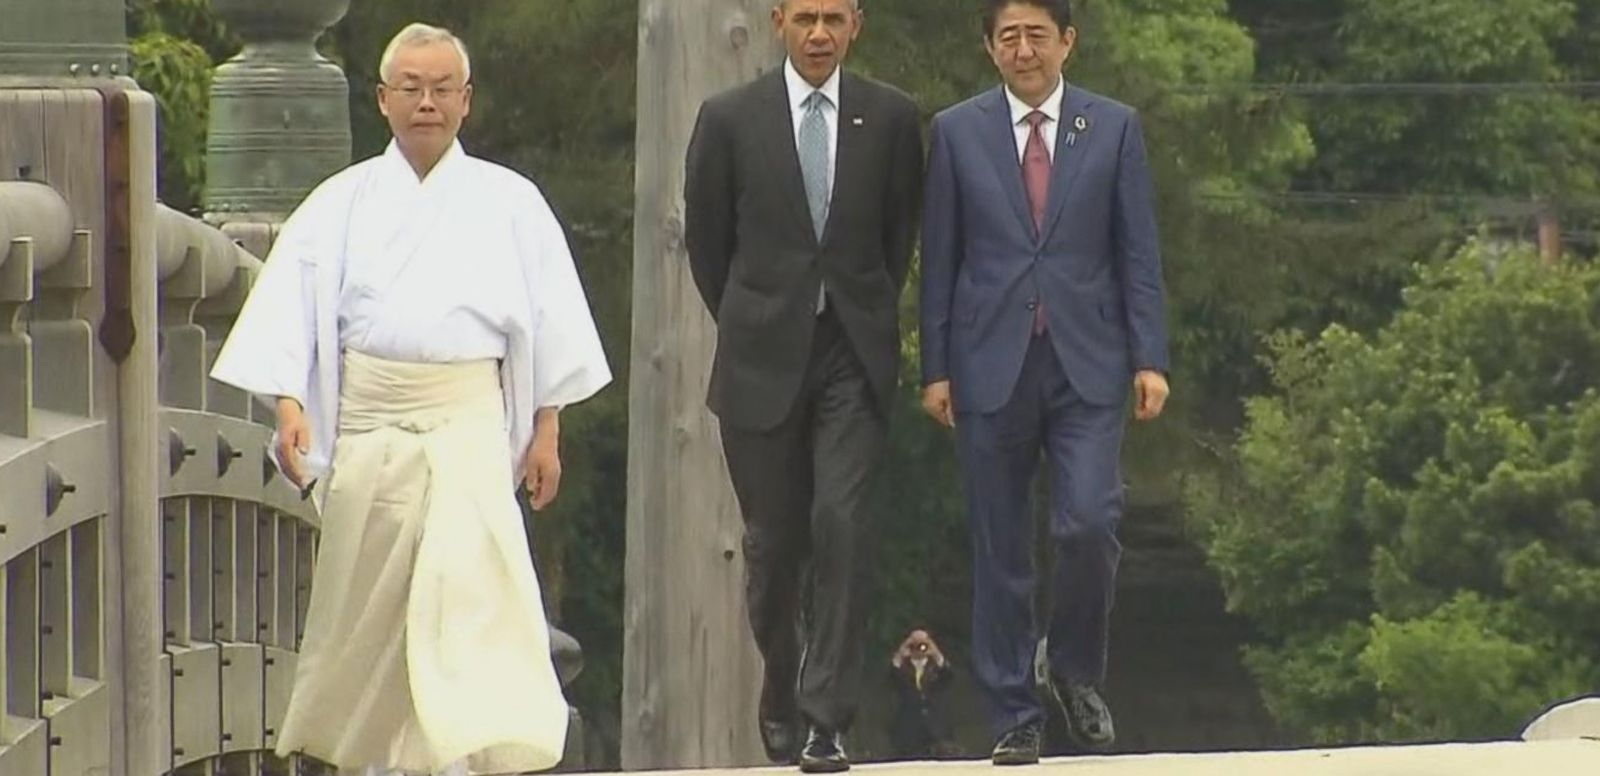 VIDEO: Obama Attends G-7 Summit